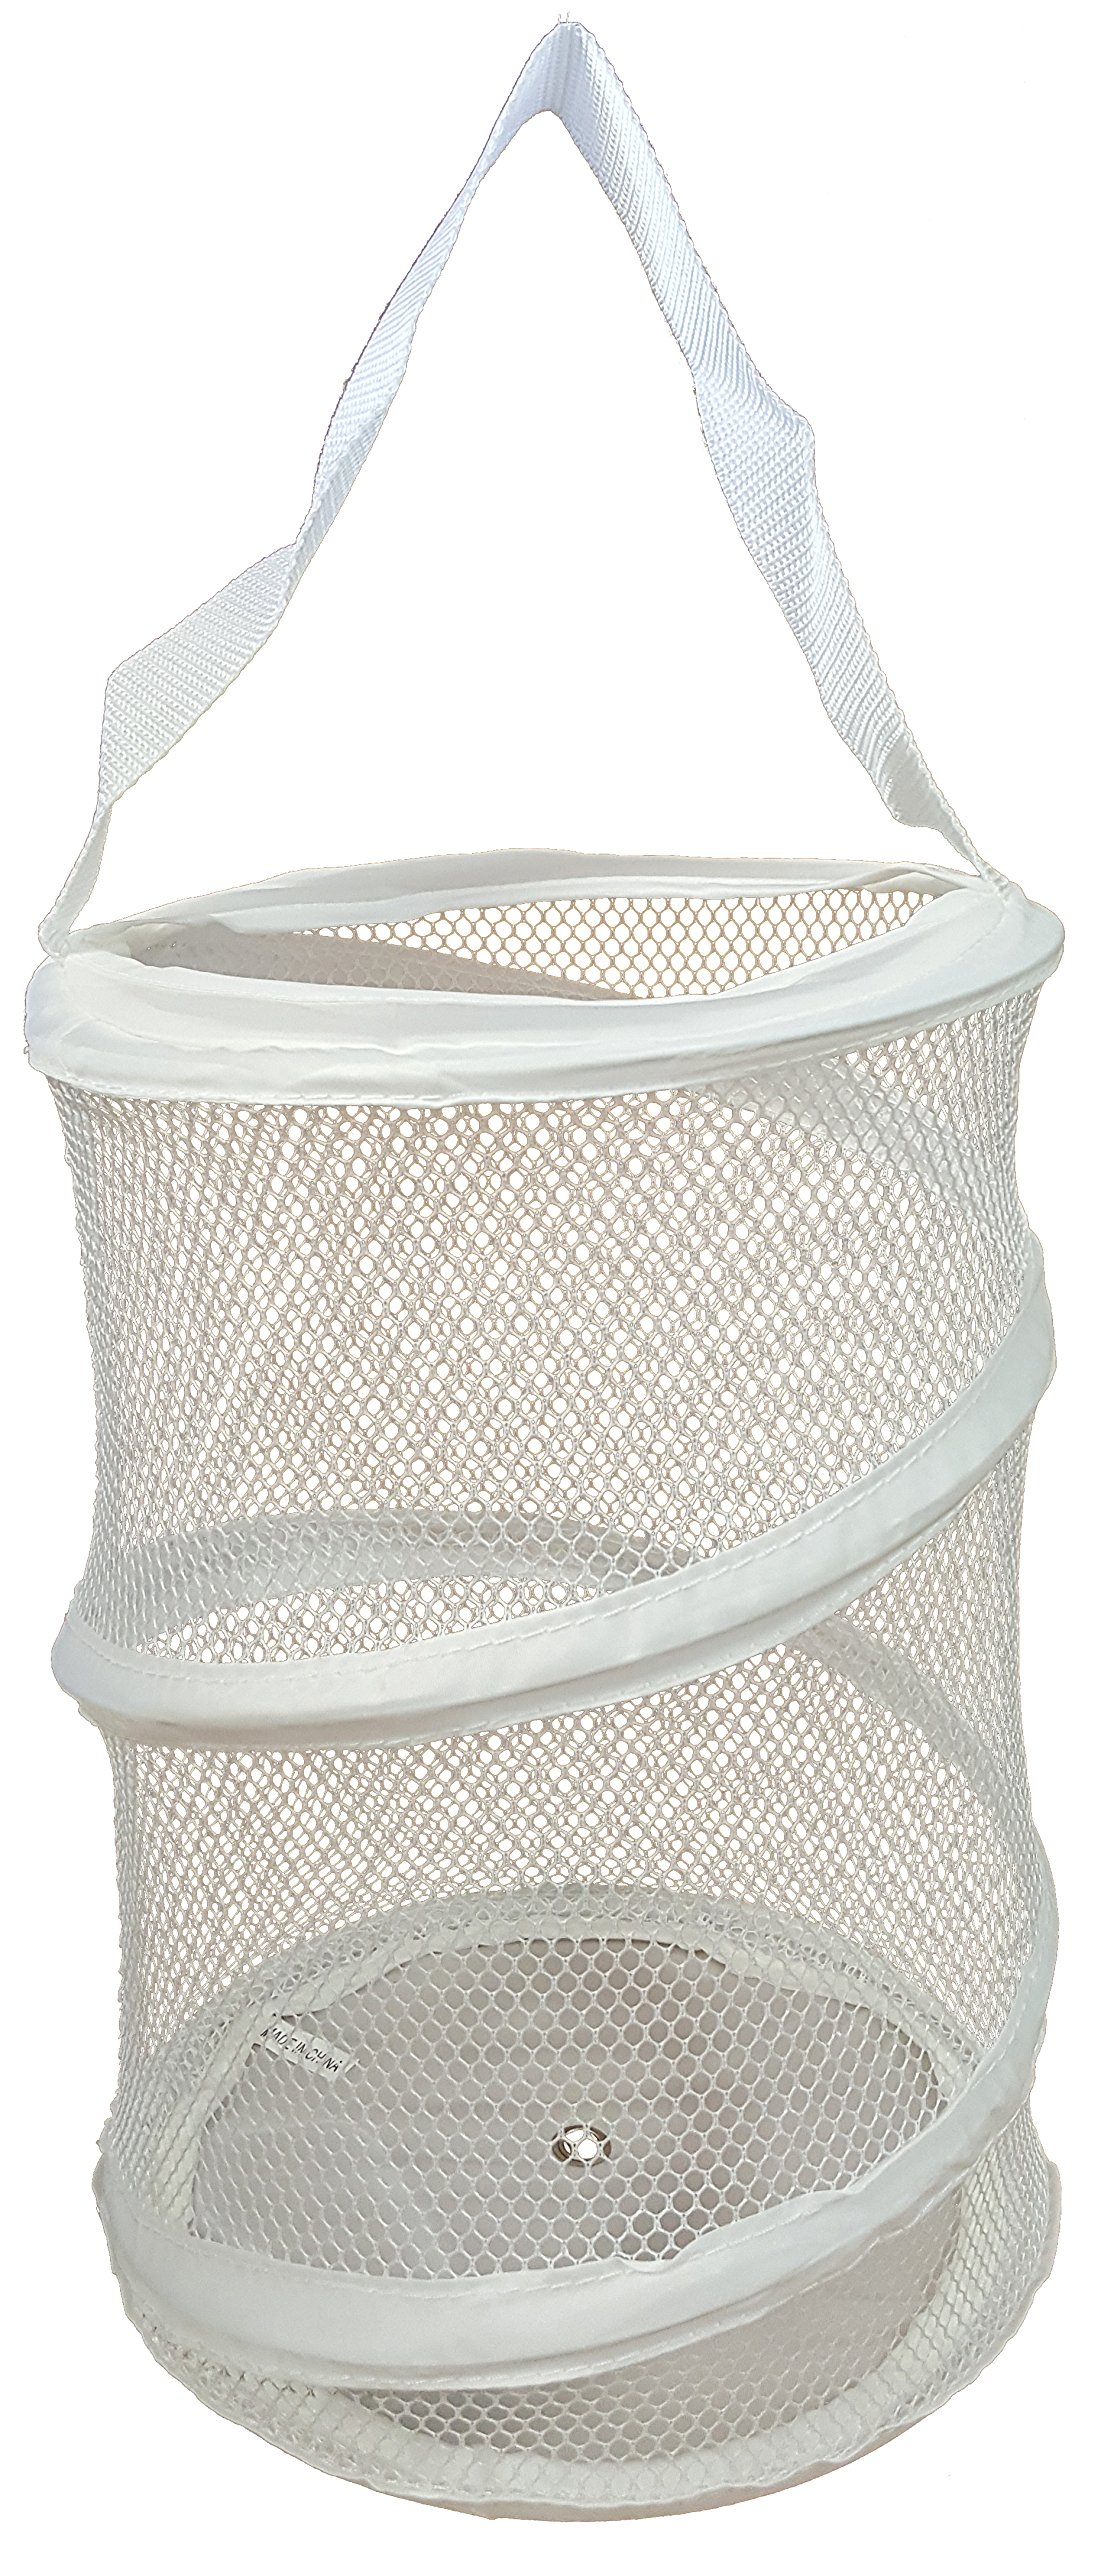 Amazon.com: Dorm Caddy Shower Tote (colors may vary),12\